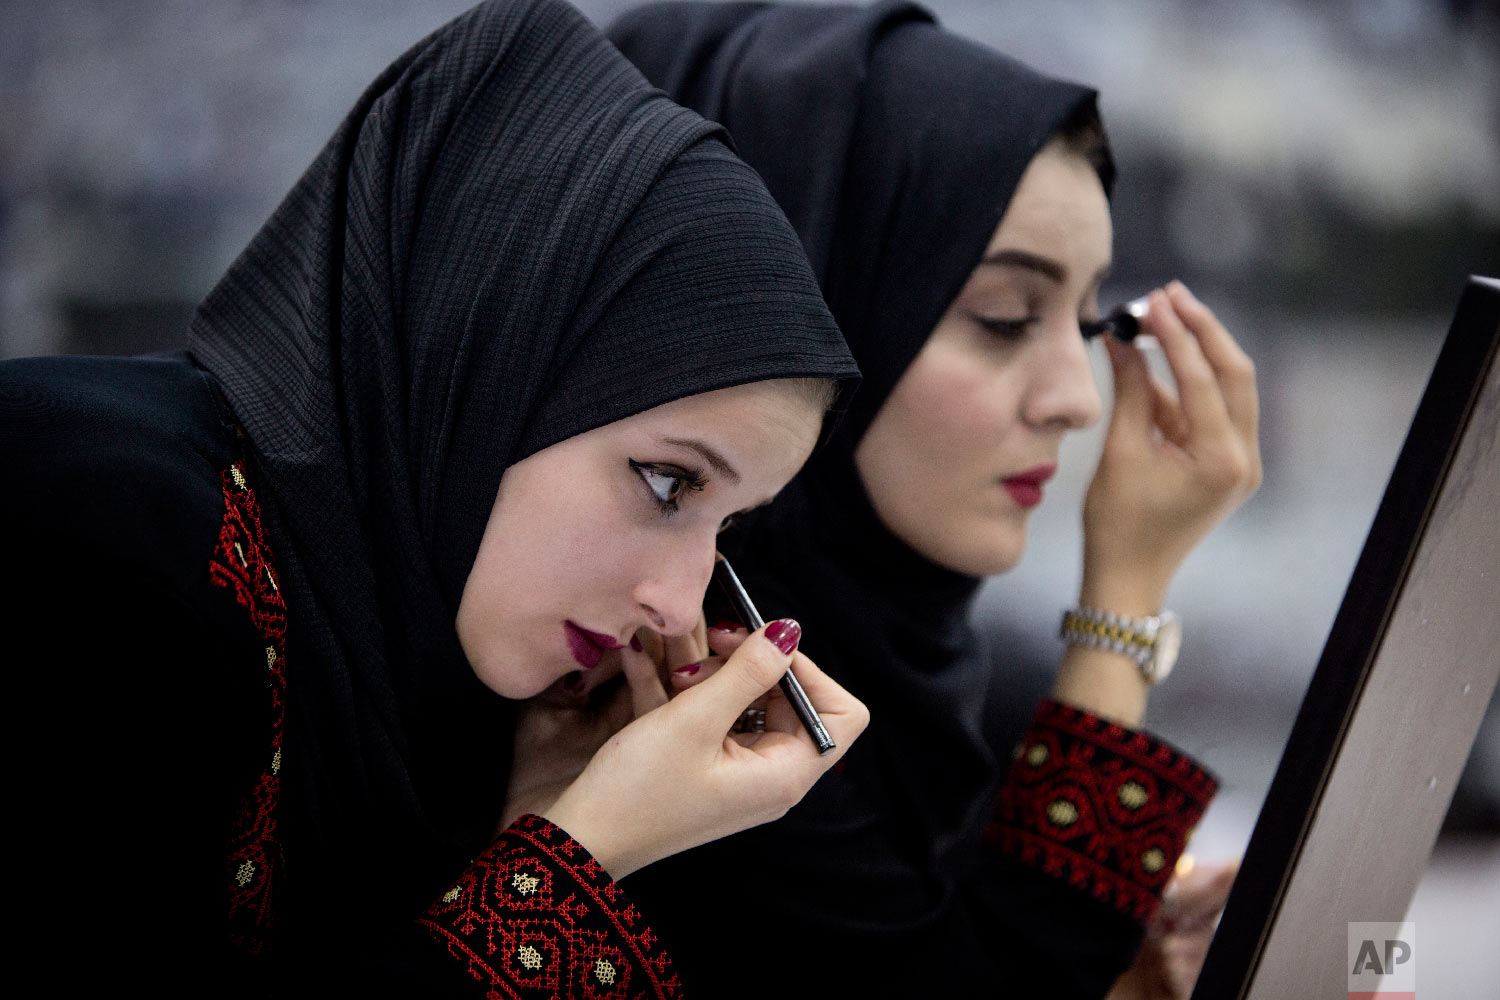 Palestinian brides prepare prior to a mass wedding event in the West Bank city of Ramallah, Saturday, Aug. 18, 2018. 252 Palestinian couples participated in the ceremony. (AP Photo/Majdi Mohammed)